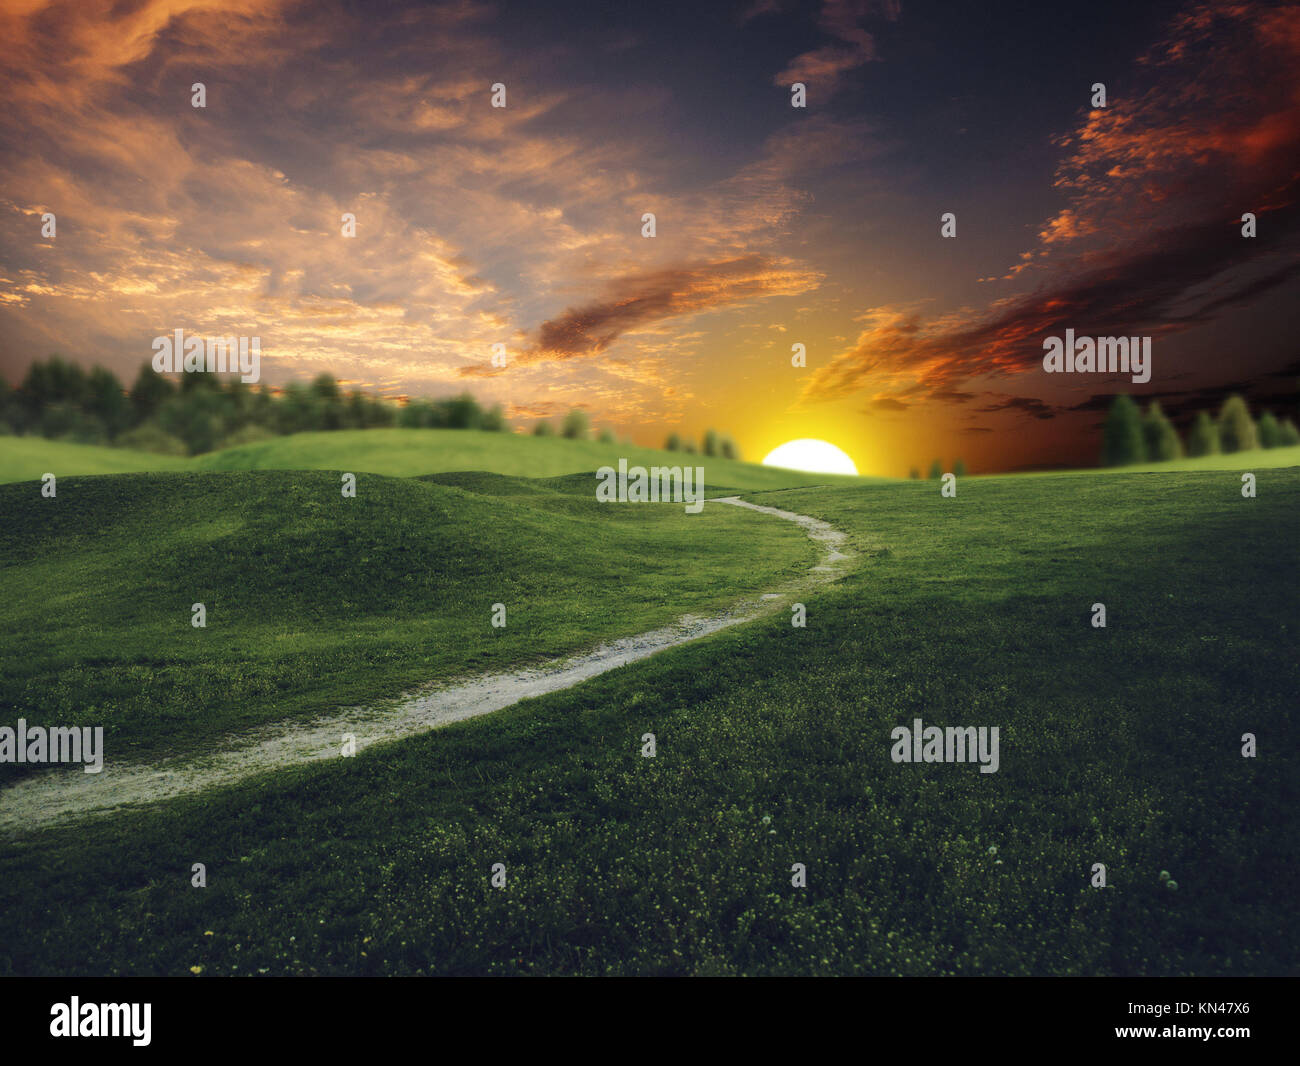 Mystical sunset over summer green hills, abstract environmental backgrounds. Stock Photo